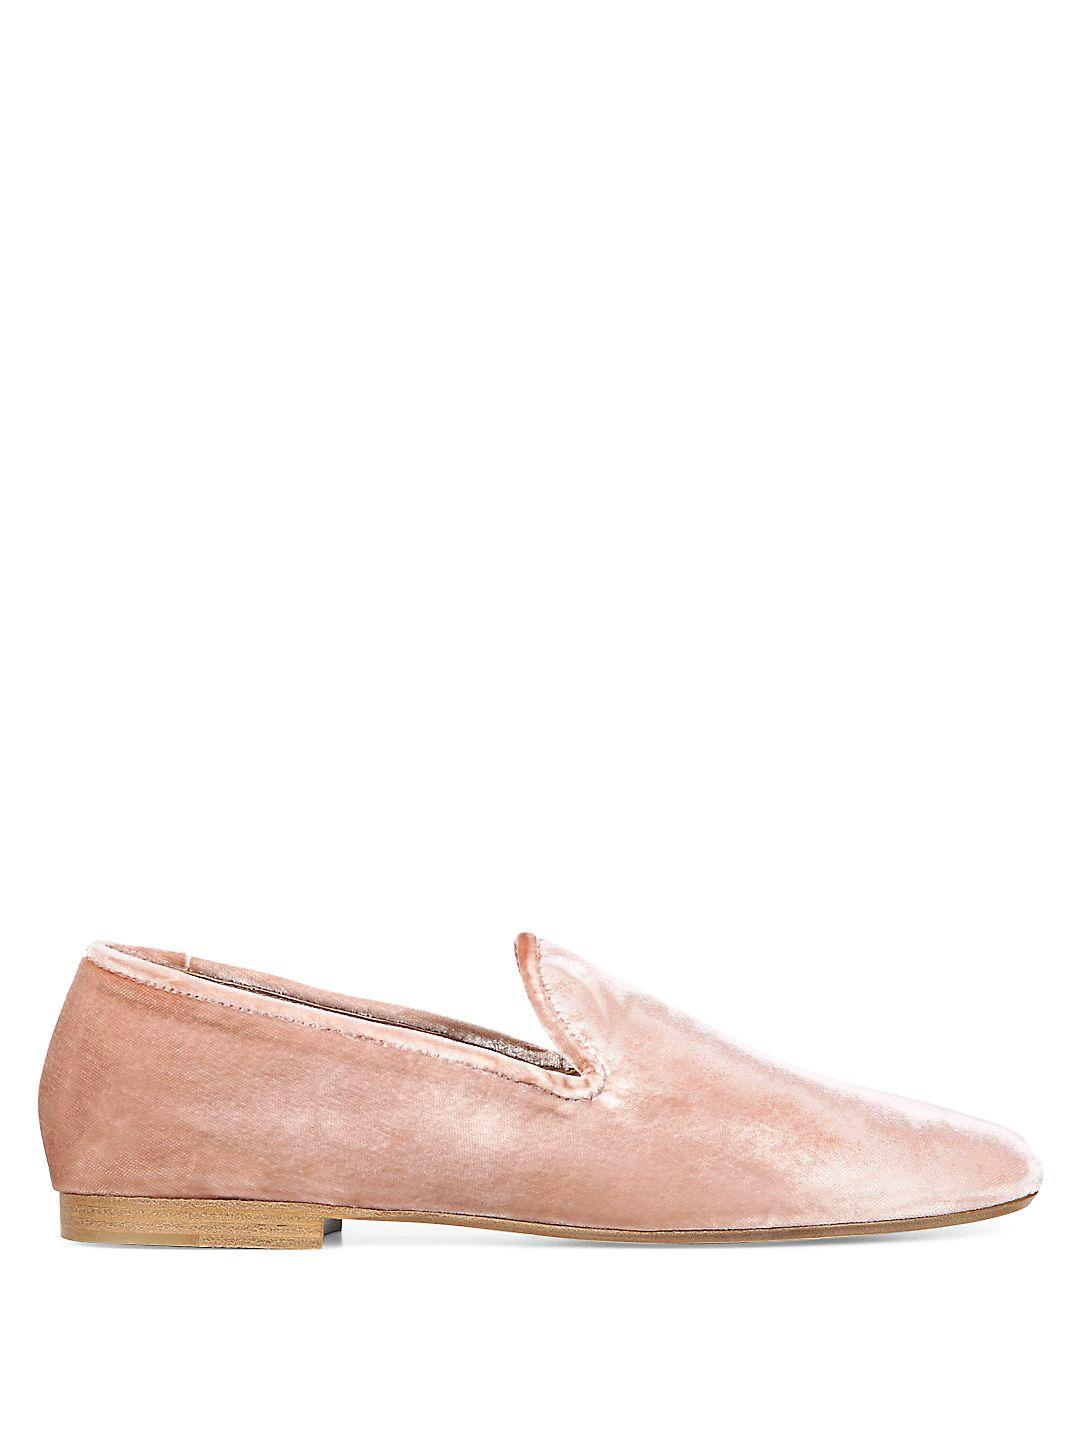 Vince Synthetic Bray Smoking Loafers for Men